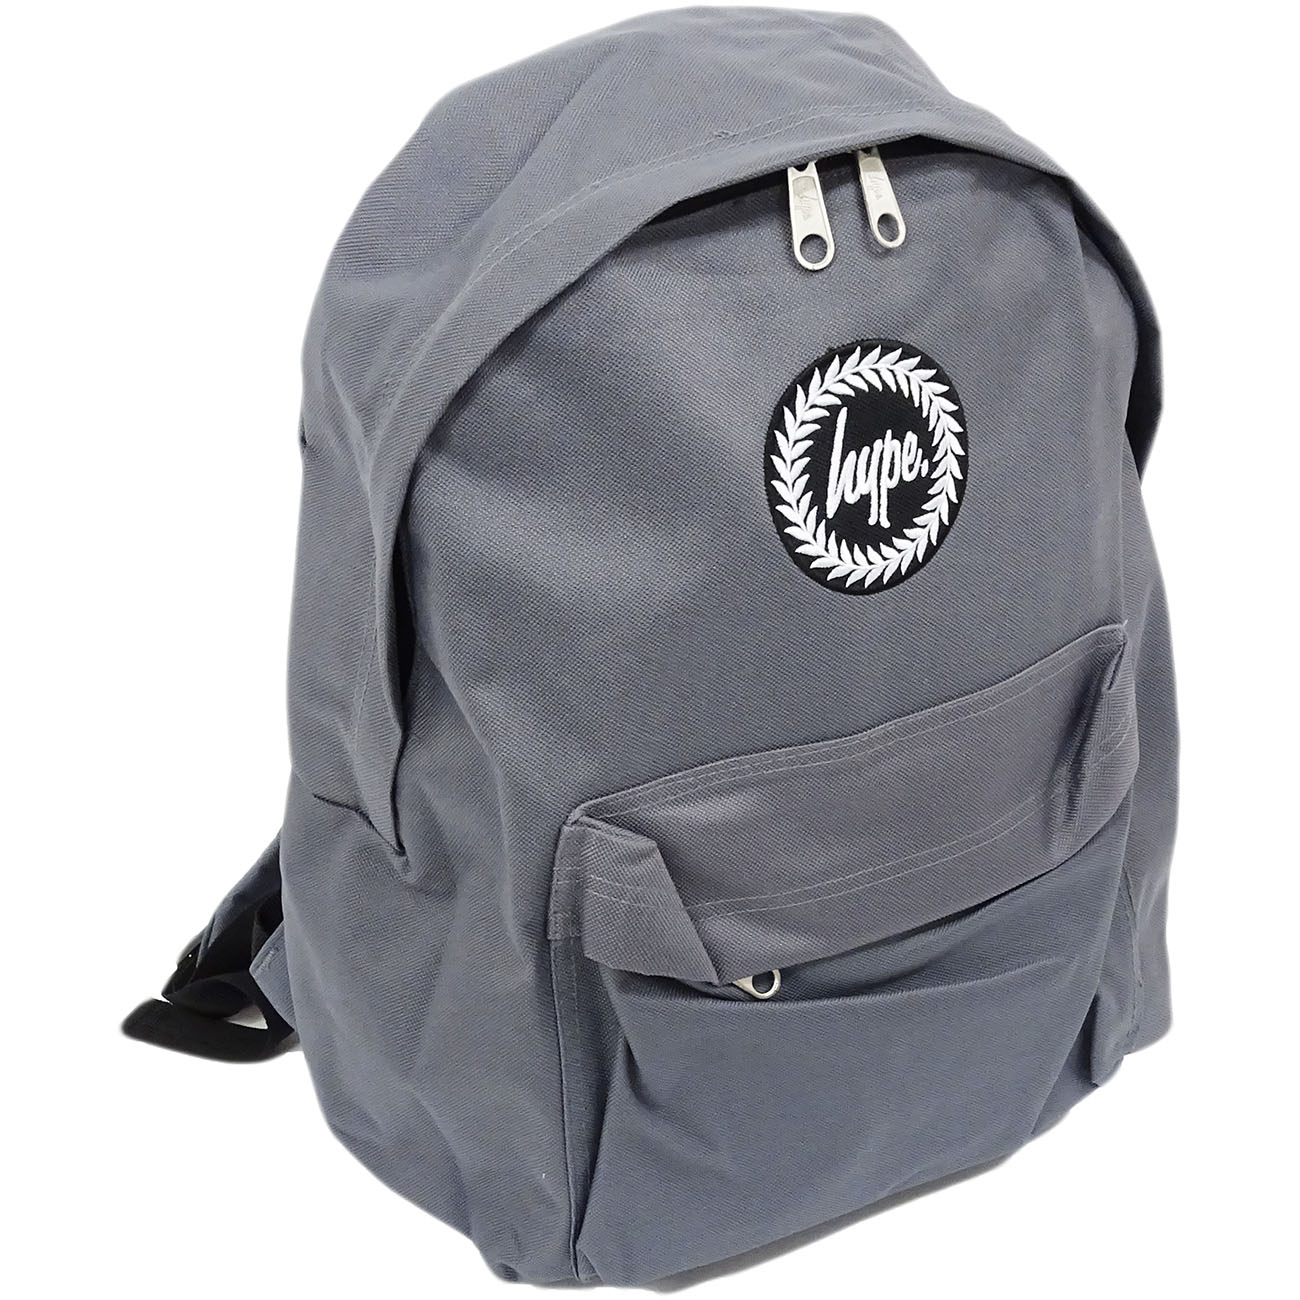 Hype Backpack Plain Charcoal Bag